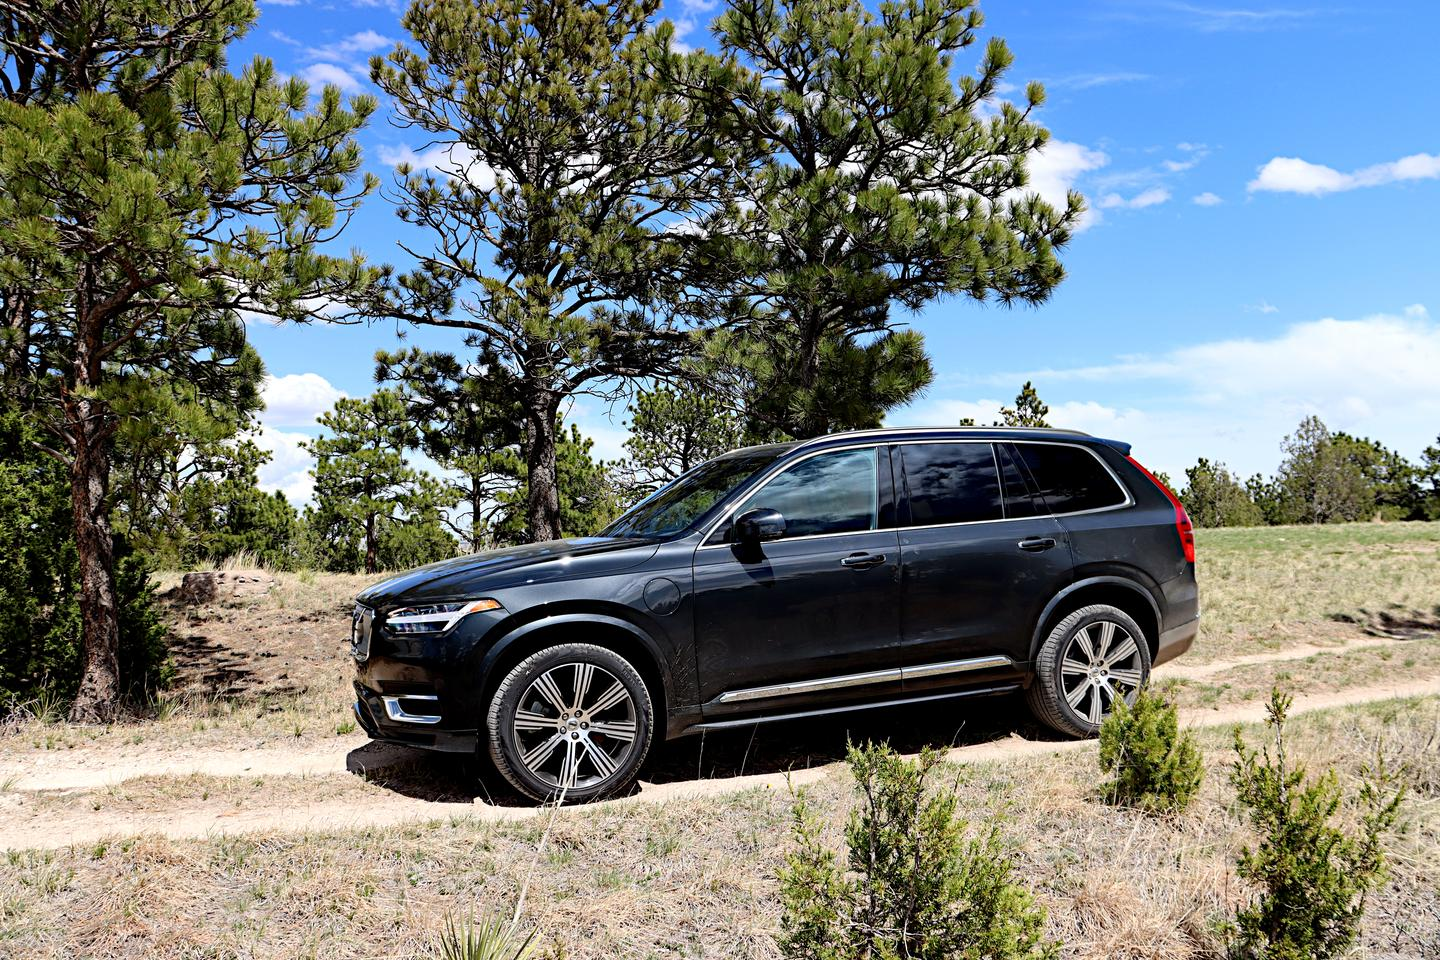 Most will be immediately drawn to the 2021 XC90's style and design